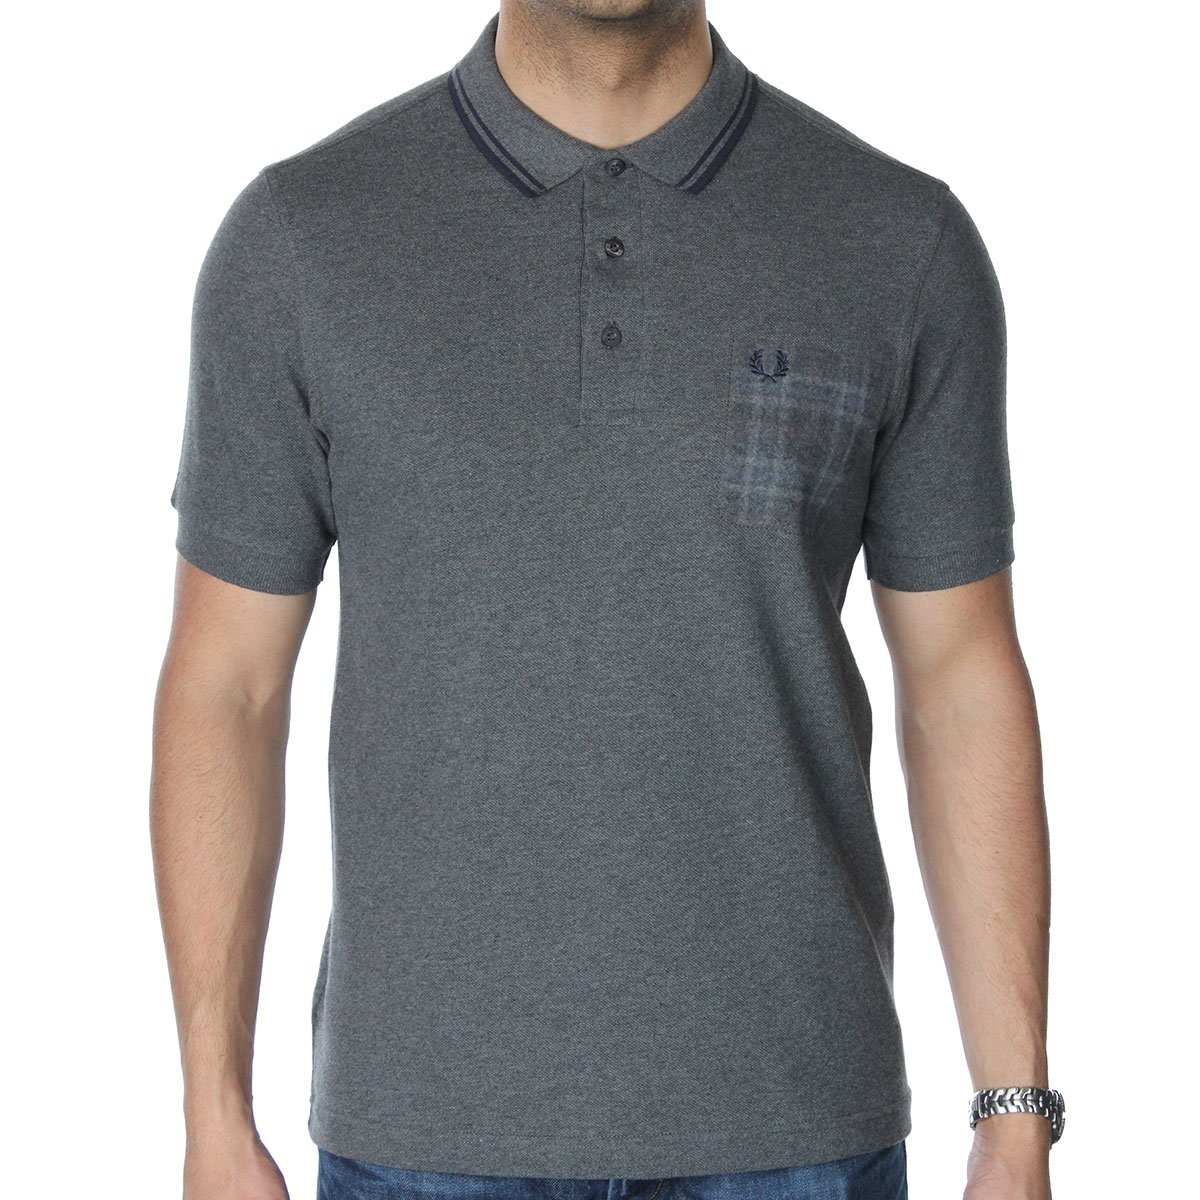 Fred perry m1386 needle punch pocket polo t shirt fred for Polo t shirts with pocket online